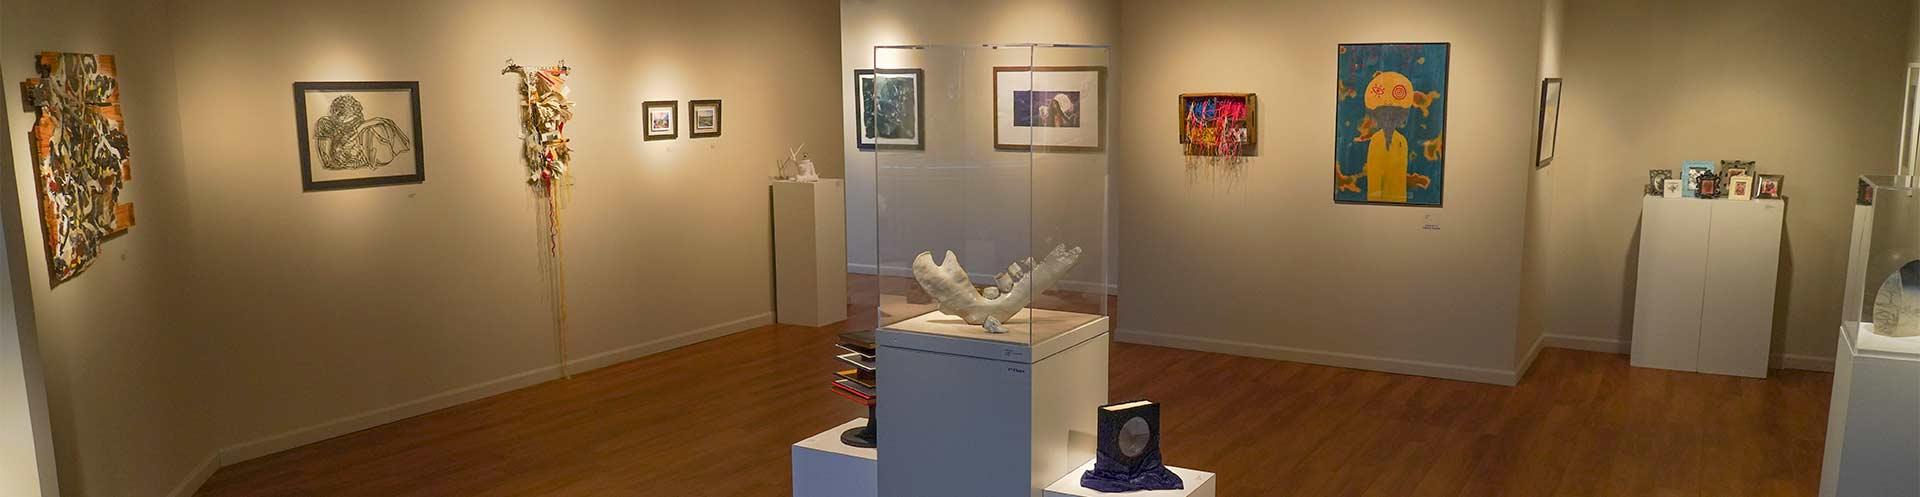 37th Annual Visions Student Juried Show